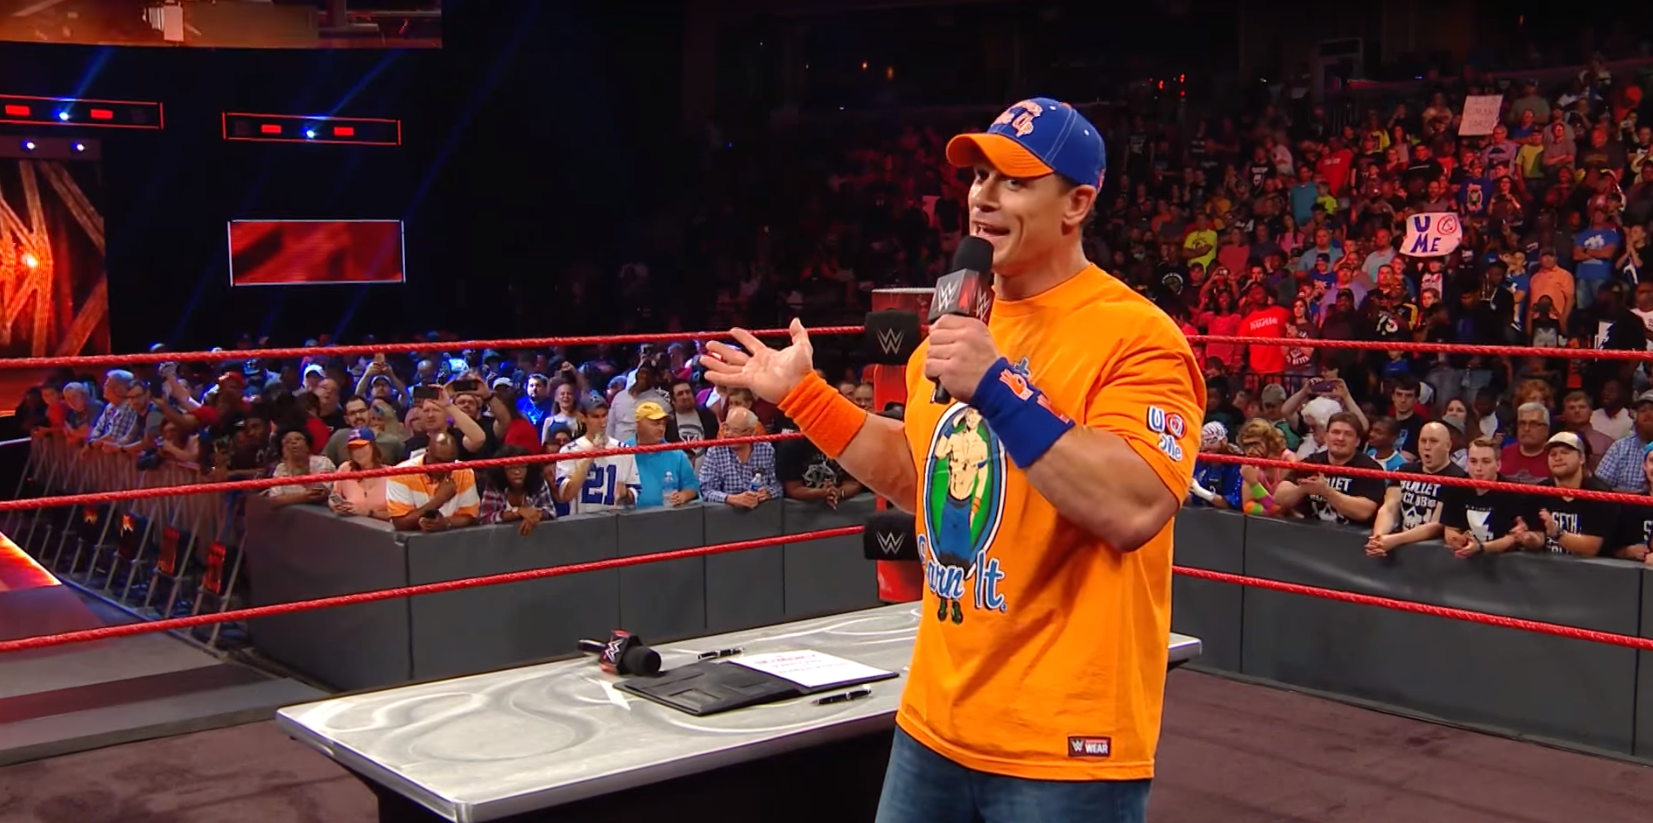 WWE's Pointless Worked Shoots Only Highlight Its Own Stagnation